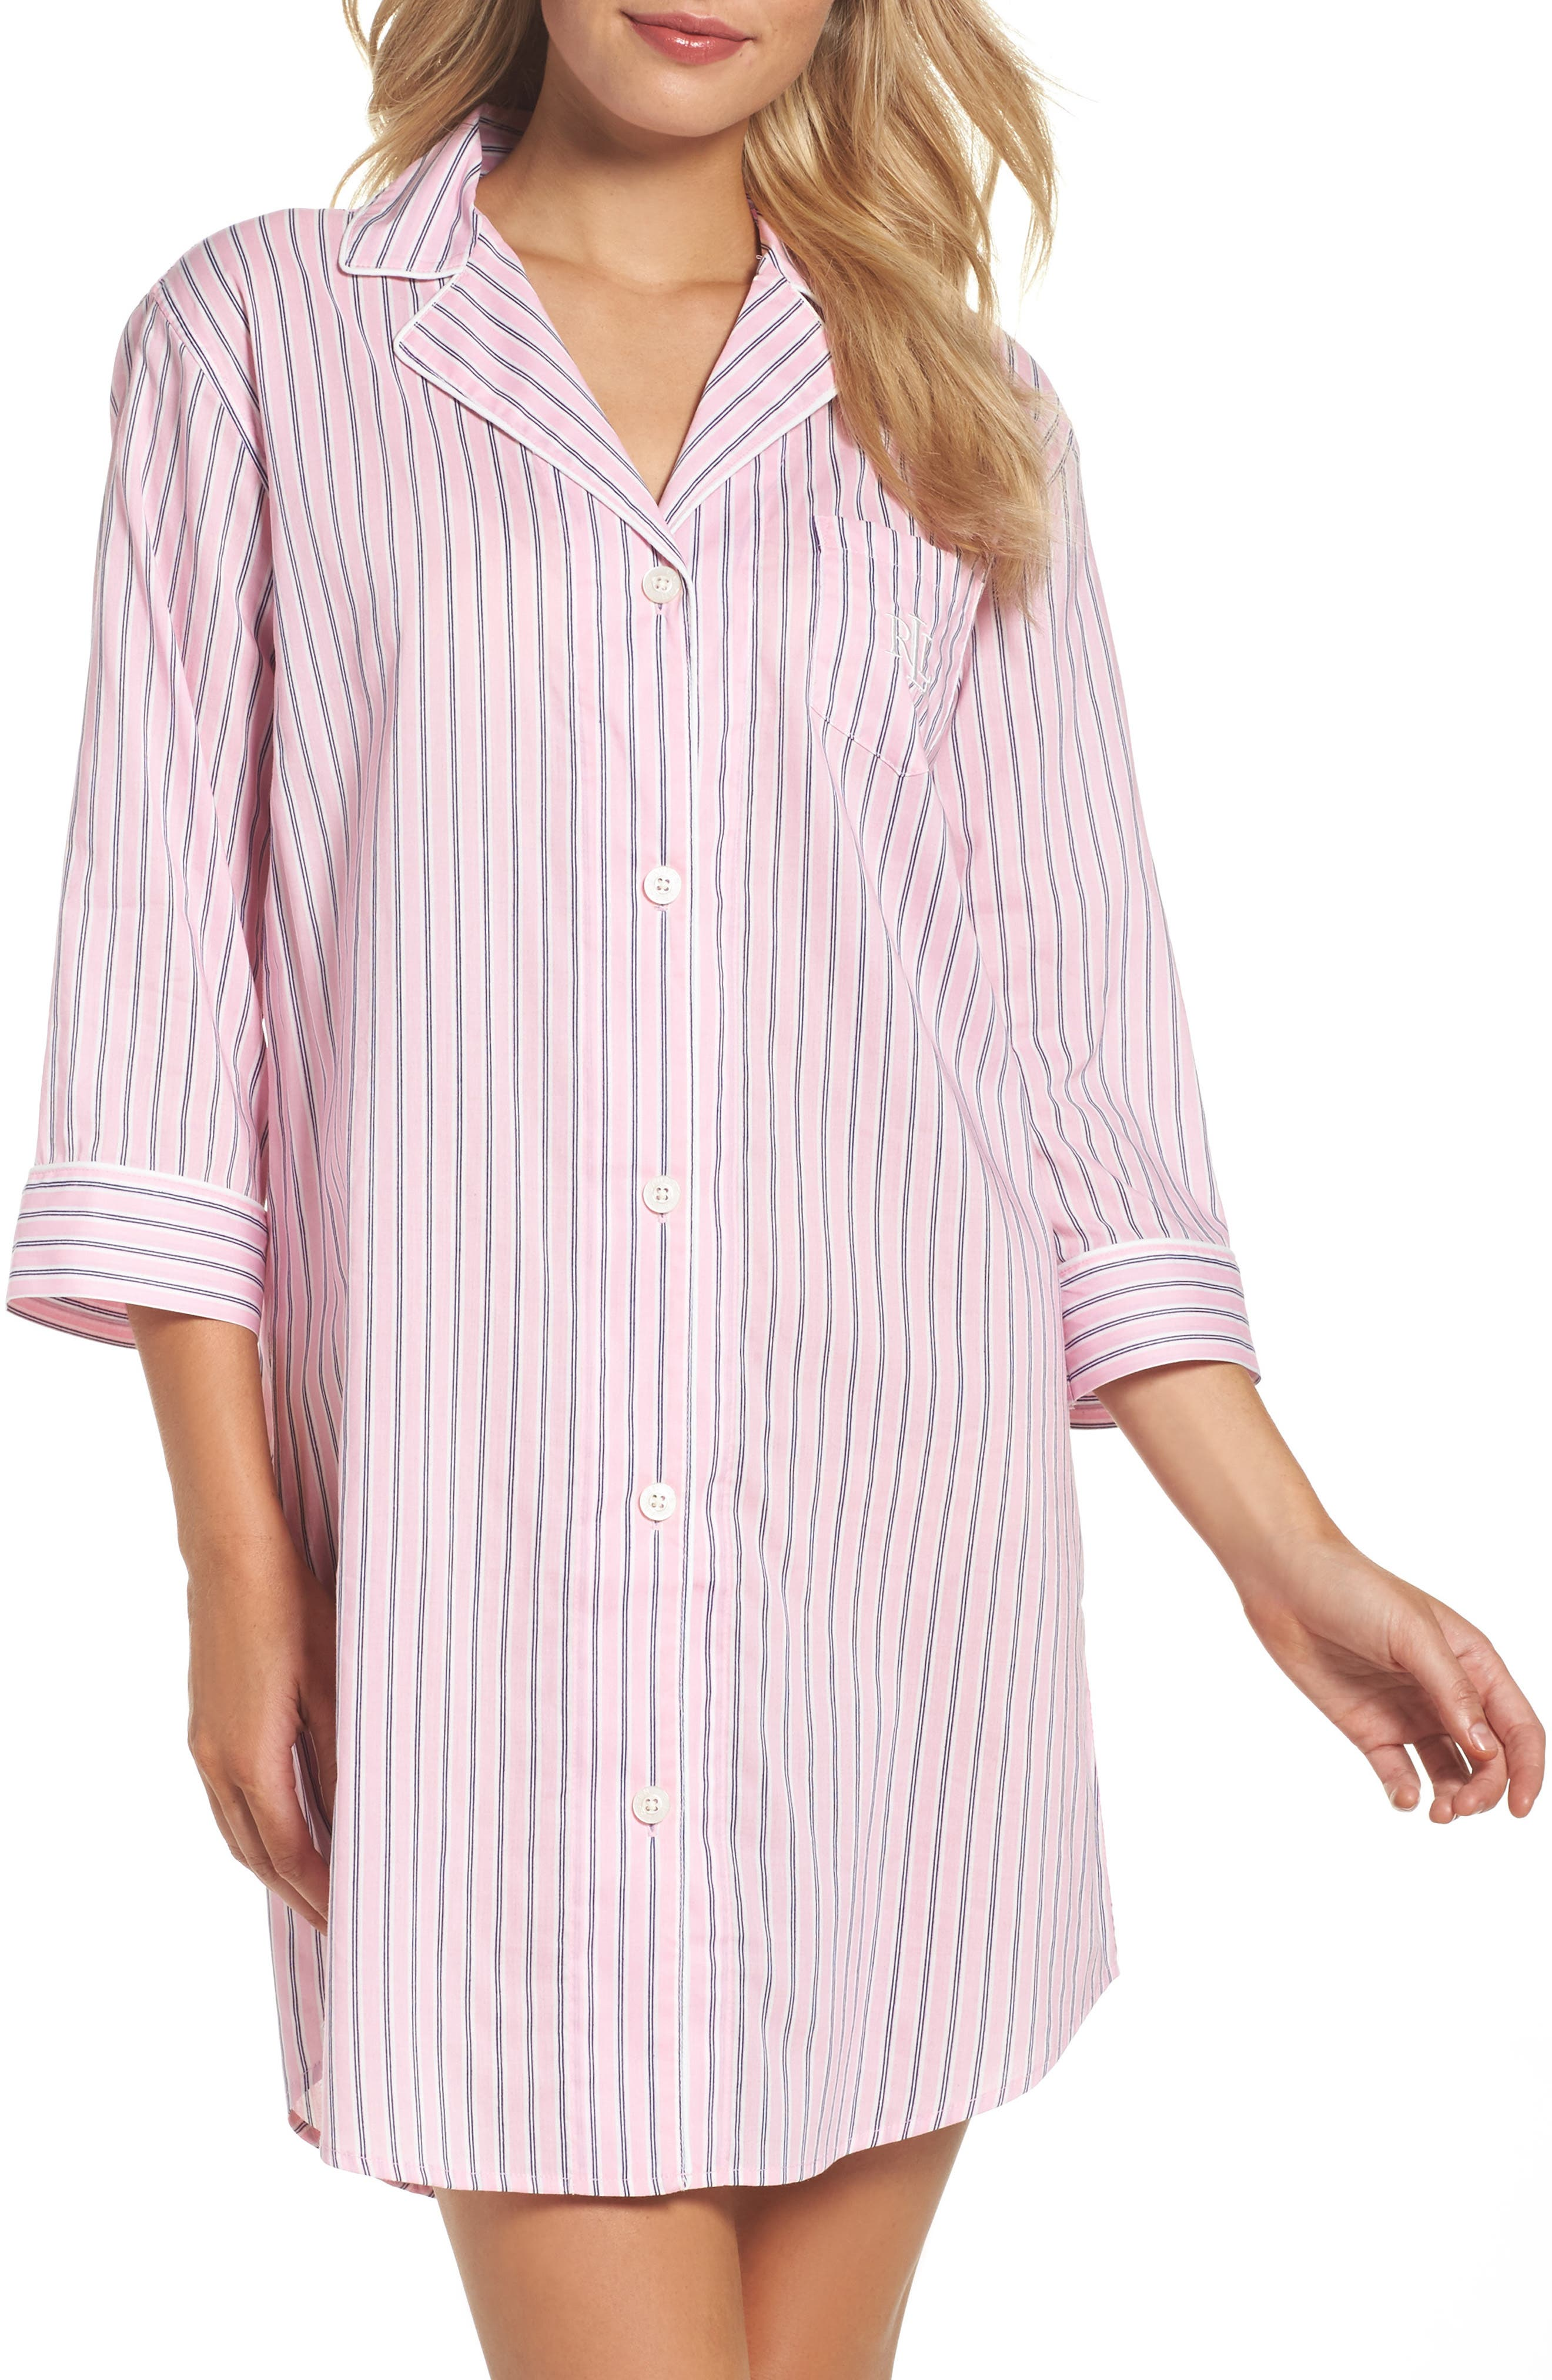 Alternate Image 1 Selected - Lauren Ralph Lauren Sleep Shirt